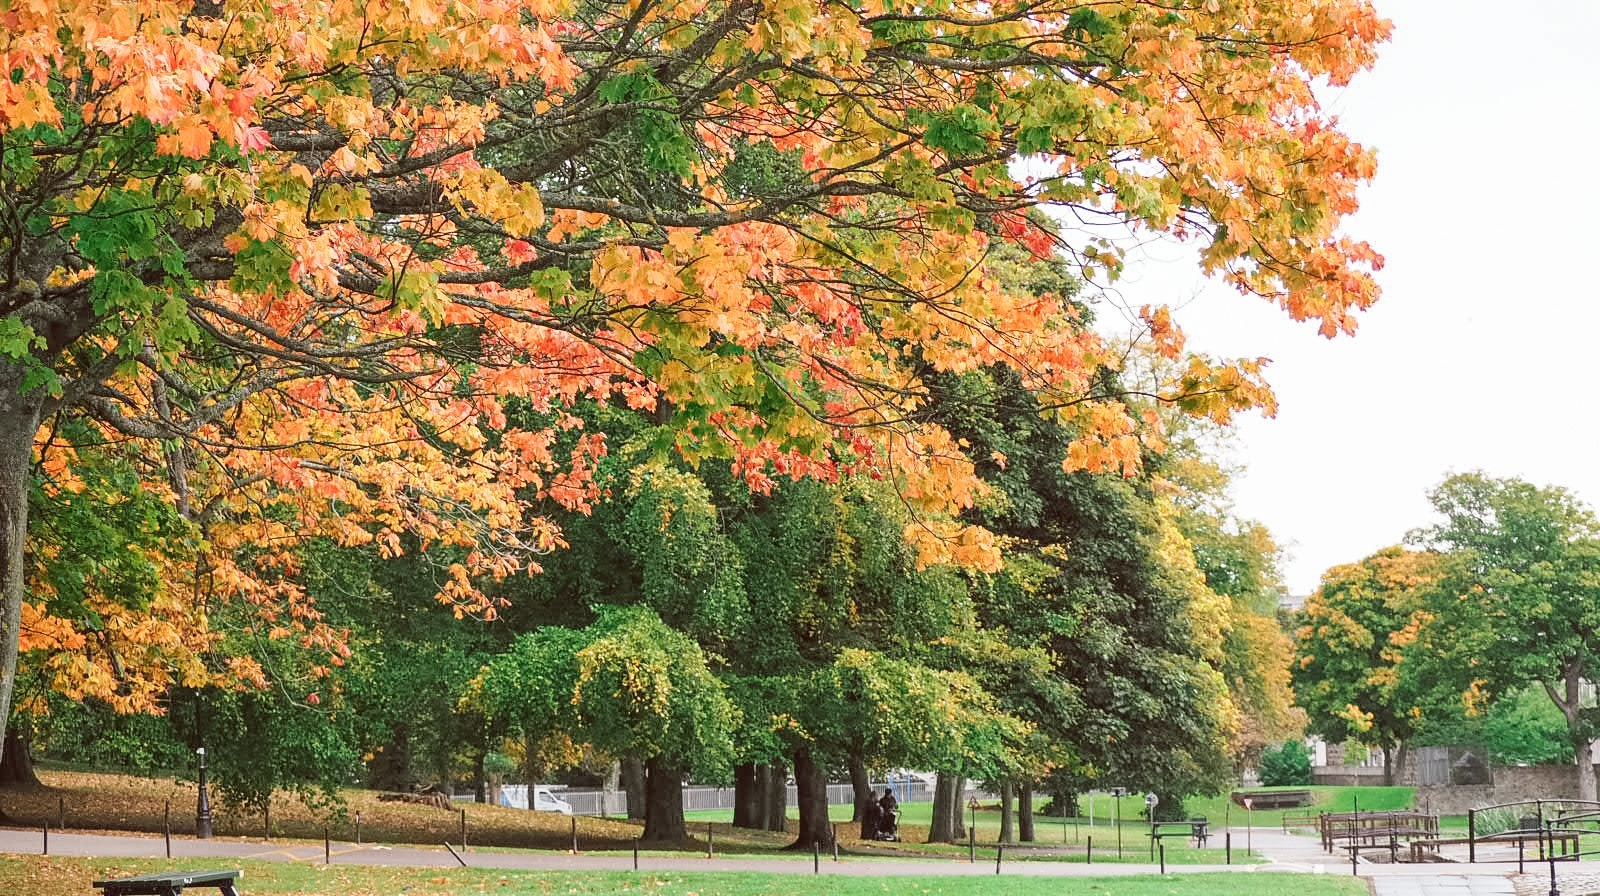 Things to do in Autumn   Take photos of nature